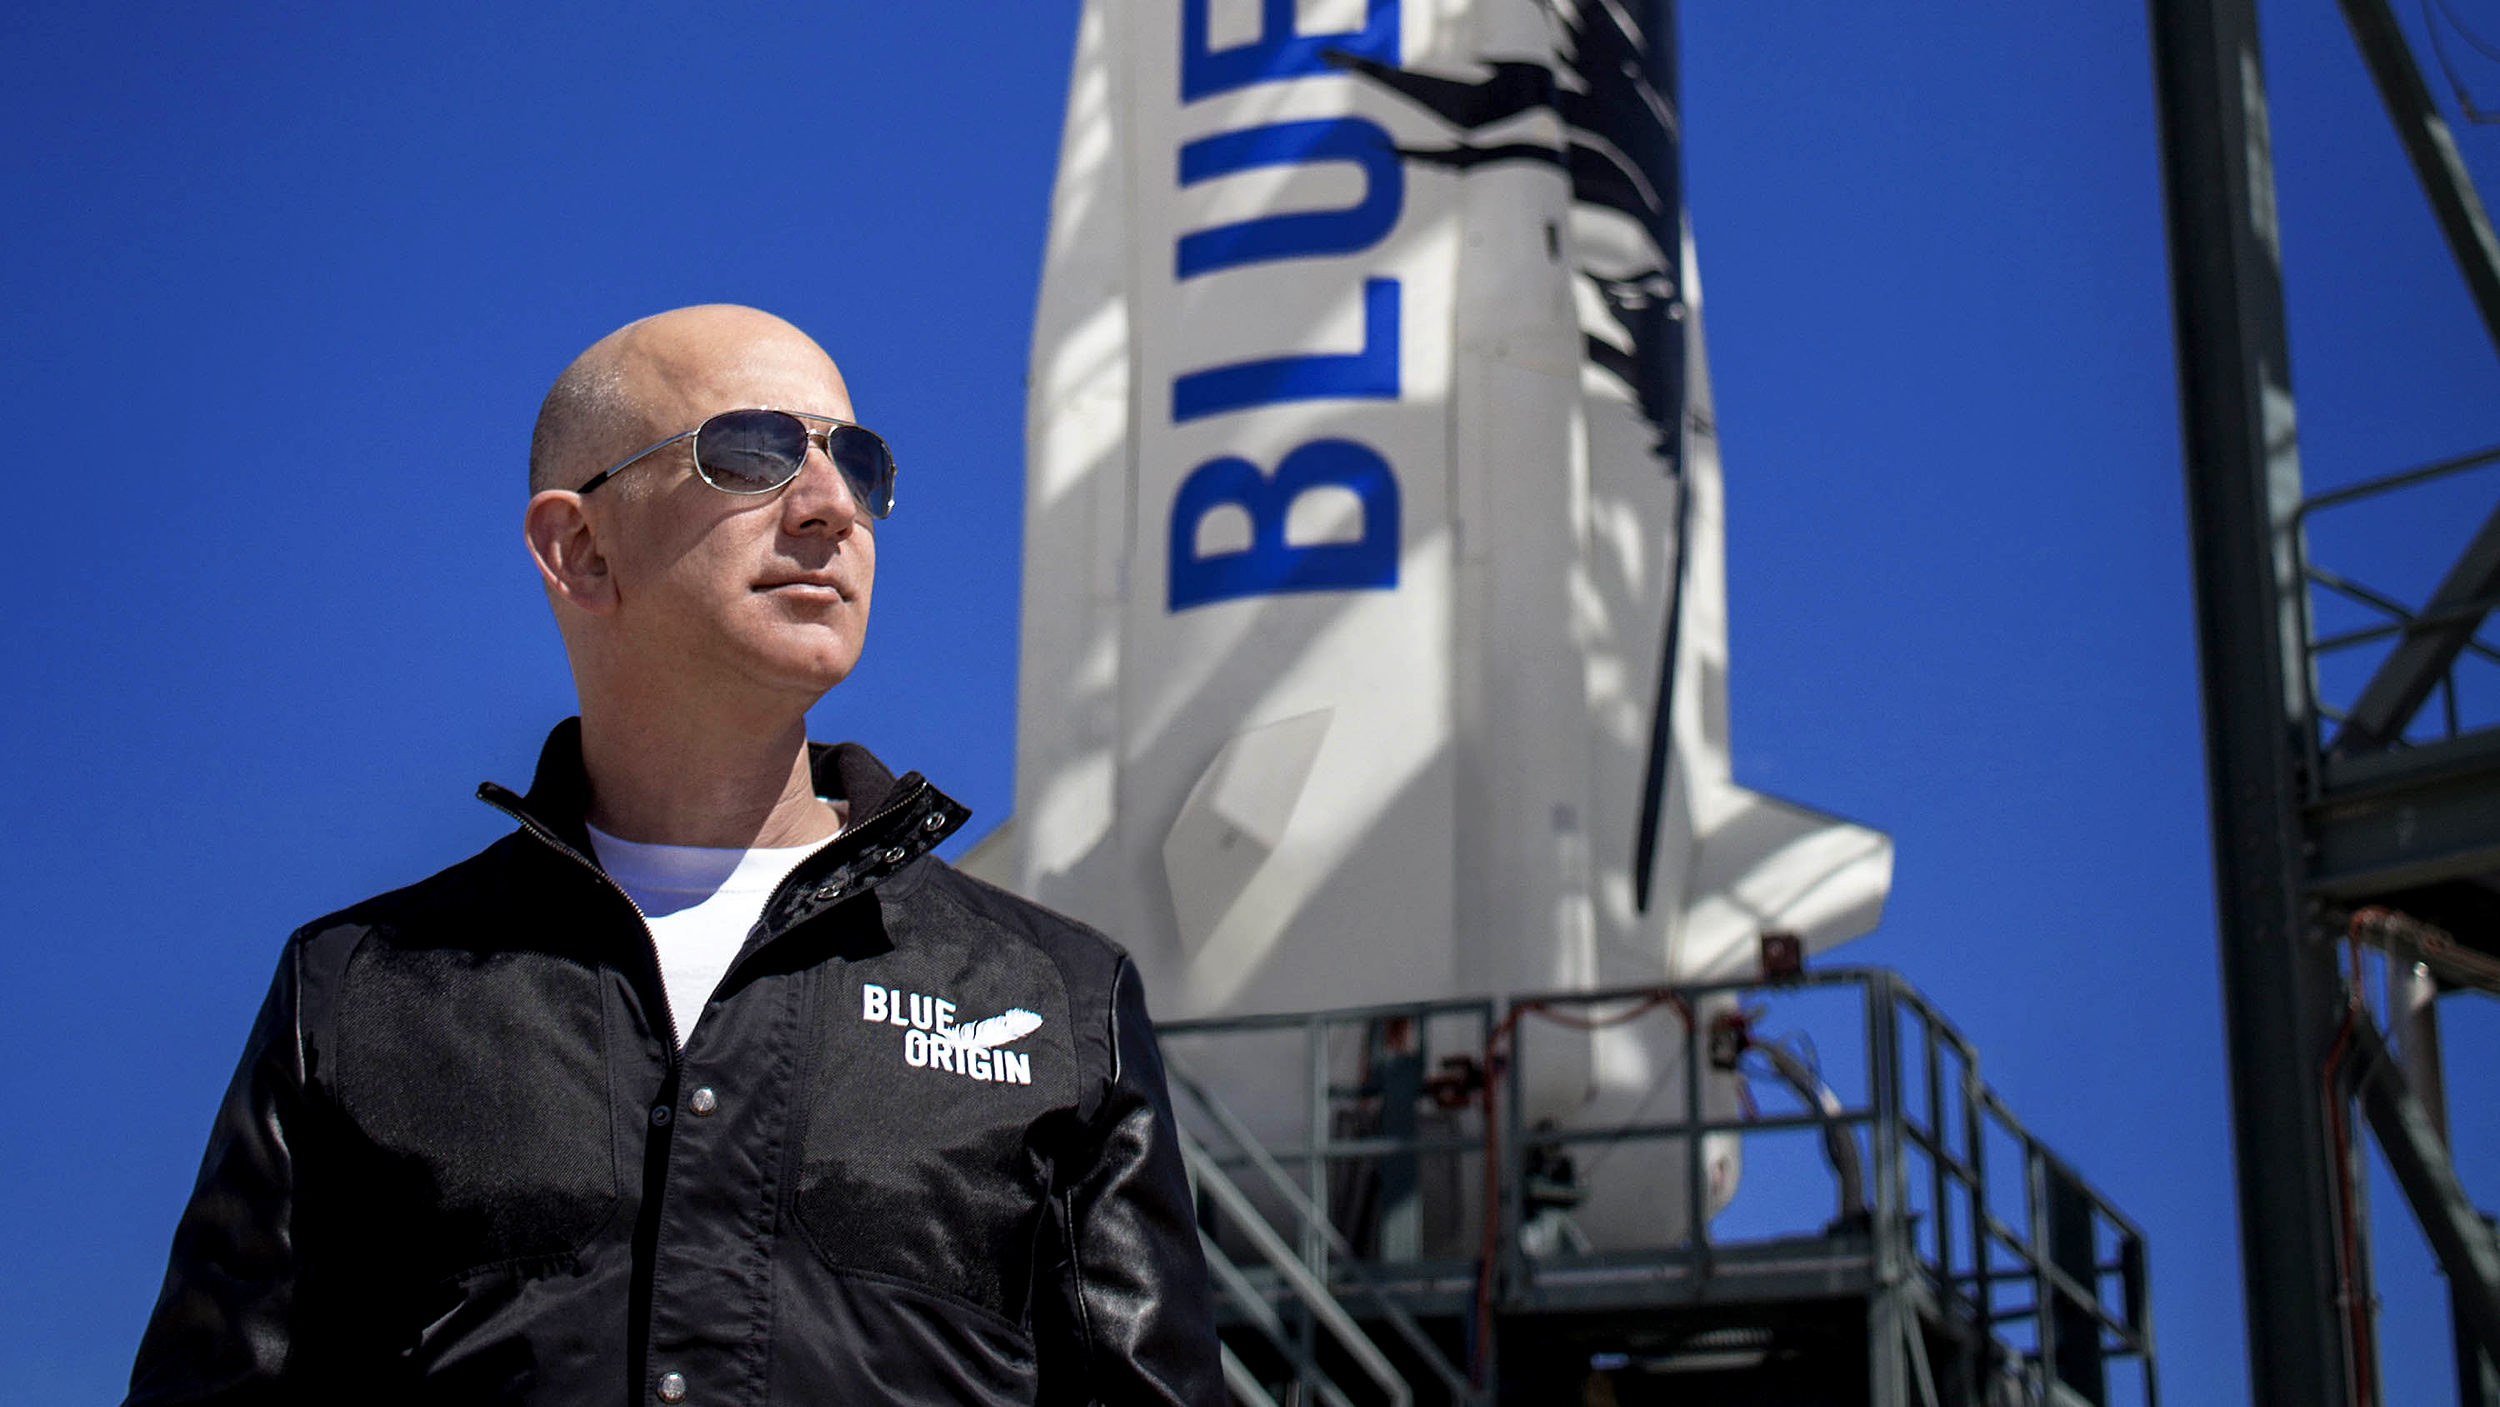 Amazon's Jeff Bezos to deliver history with first all-civilian suborbital flight